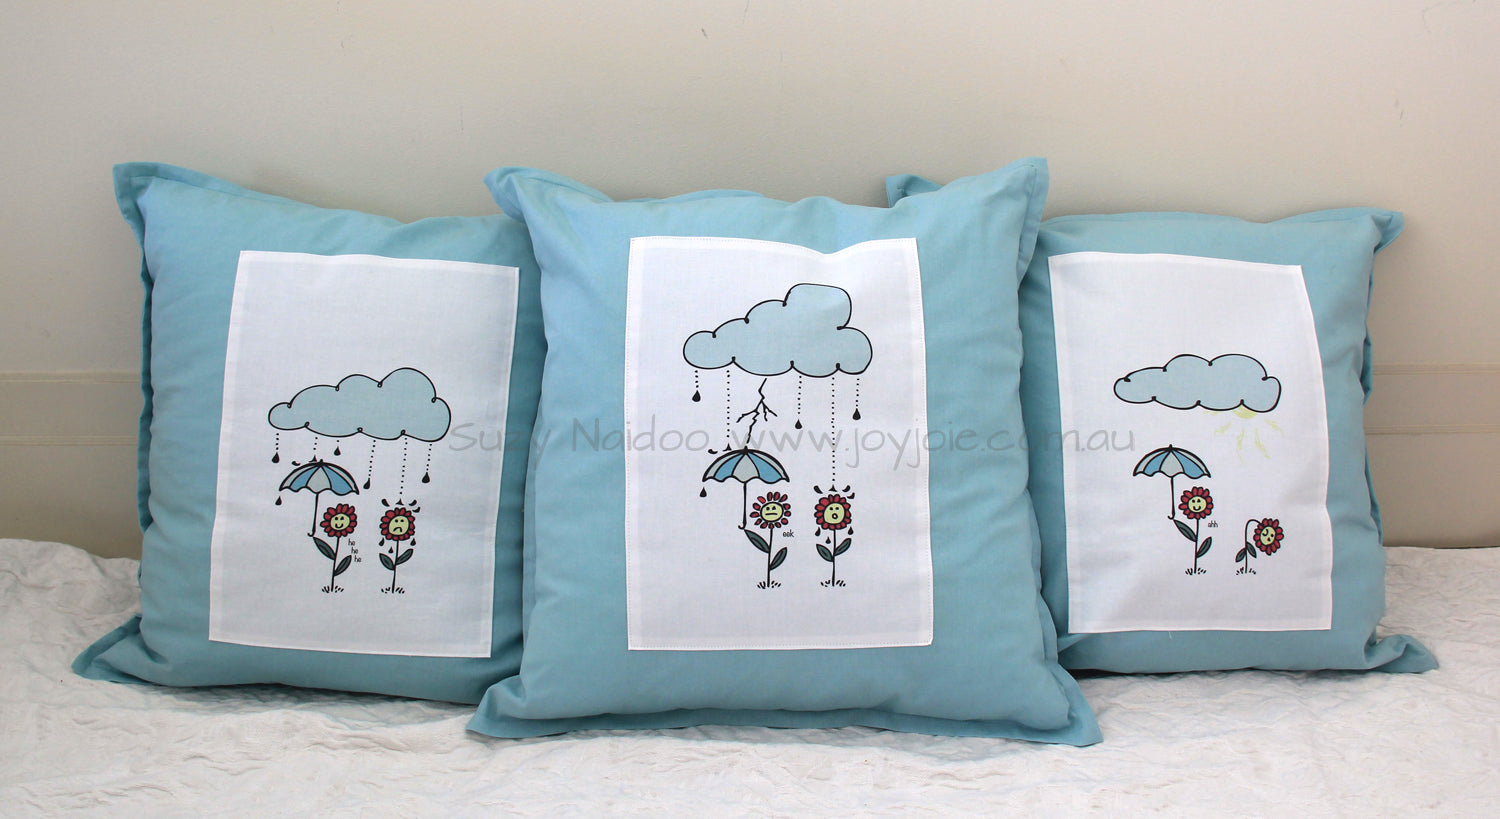 Cloudy Day Cushions